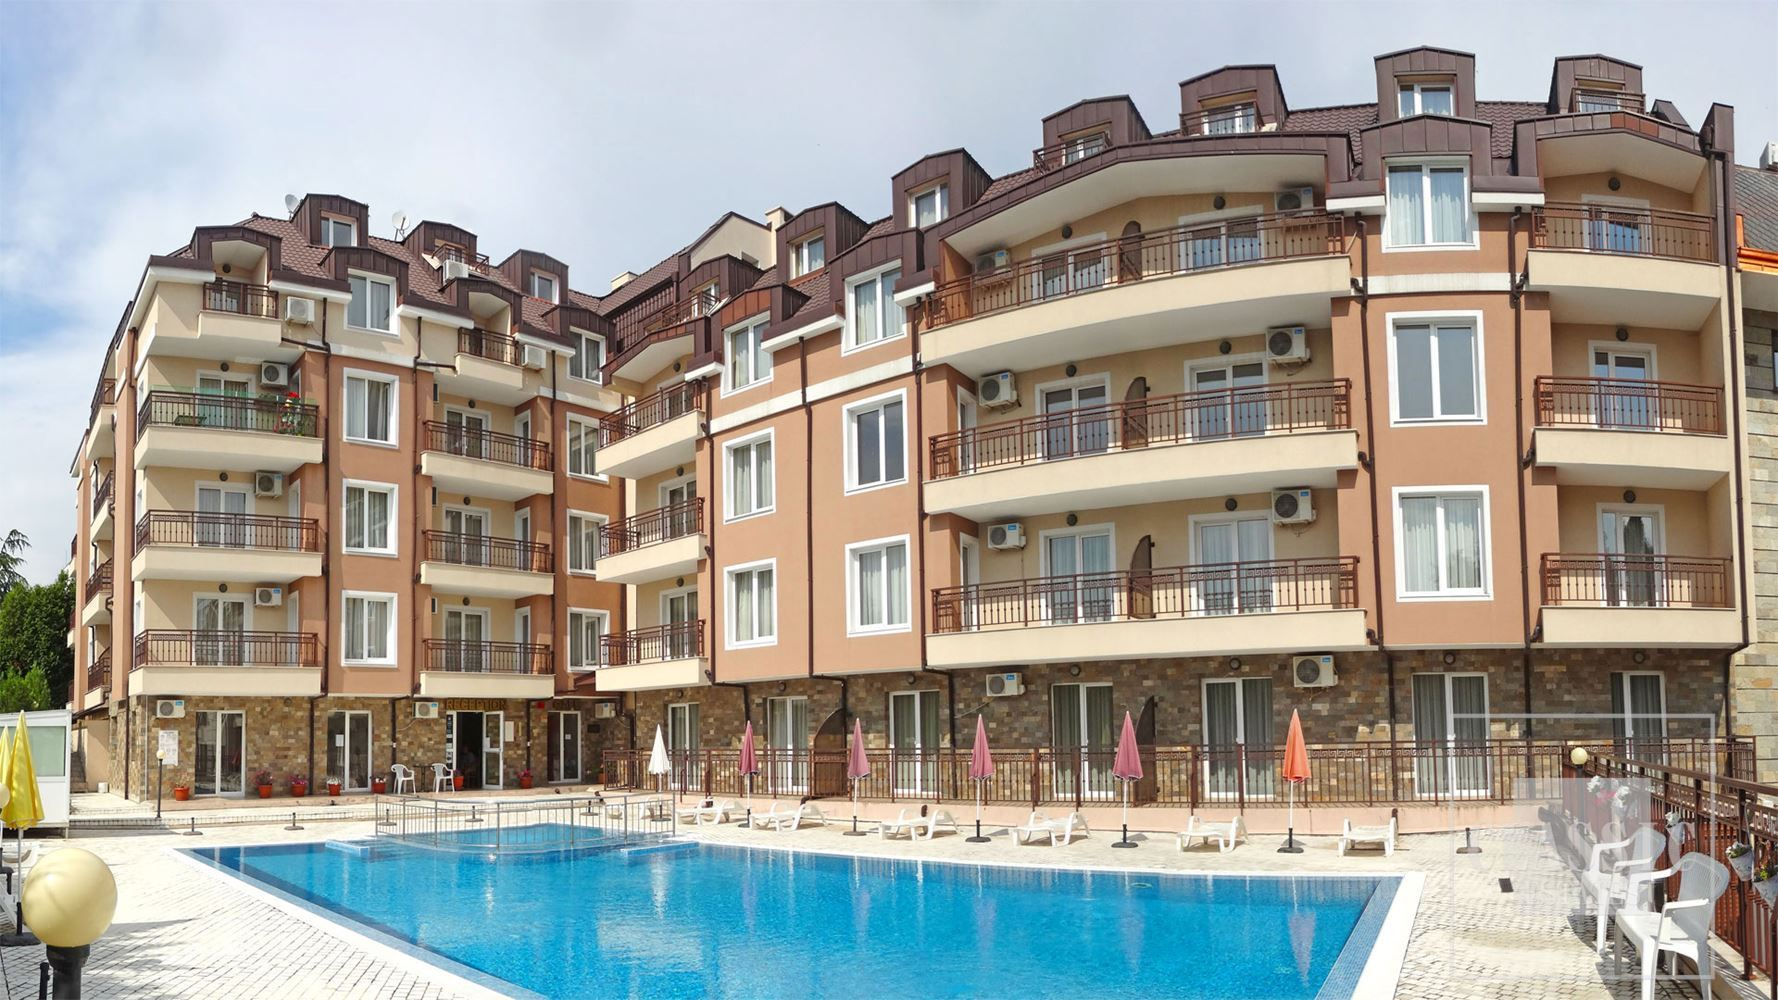 Sale of a residential complex suitable for hotel business